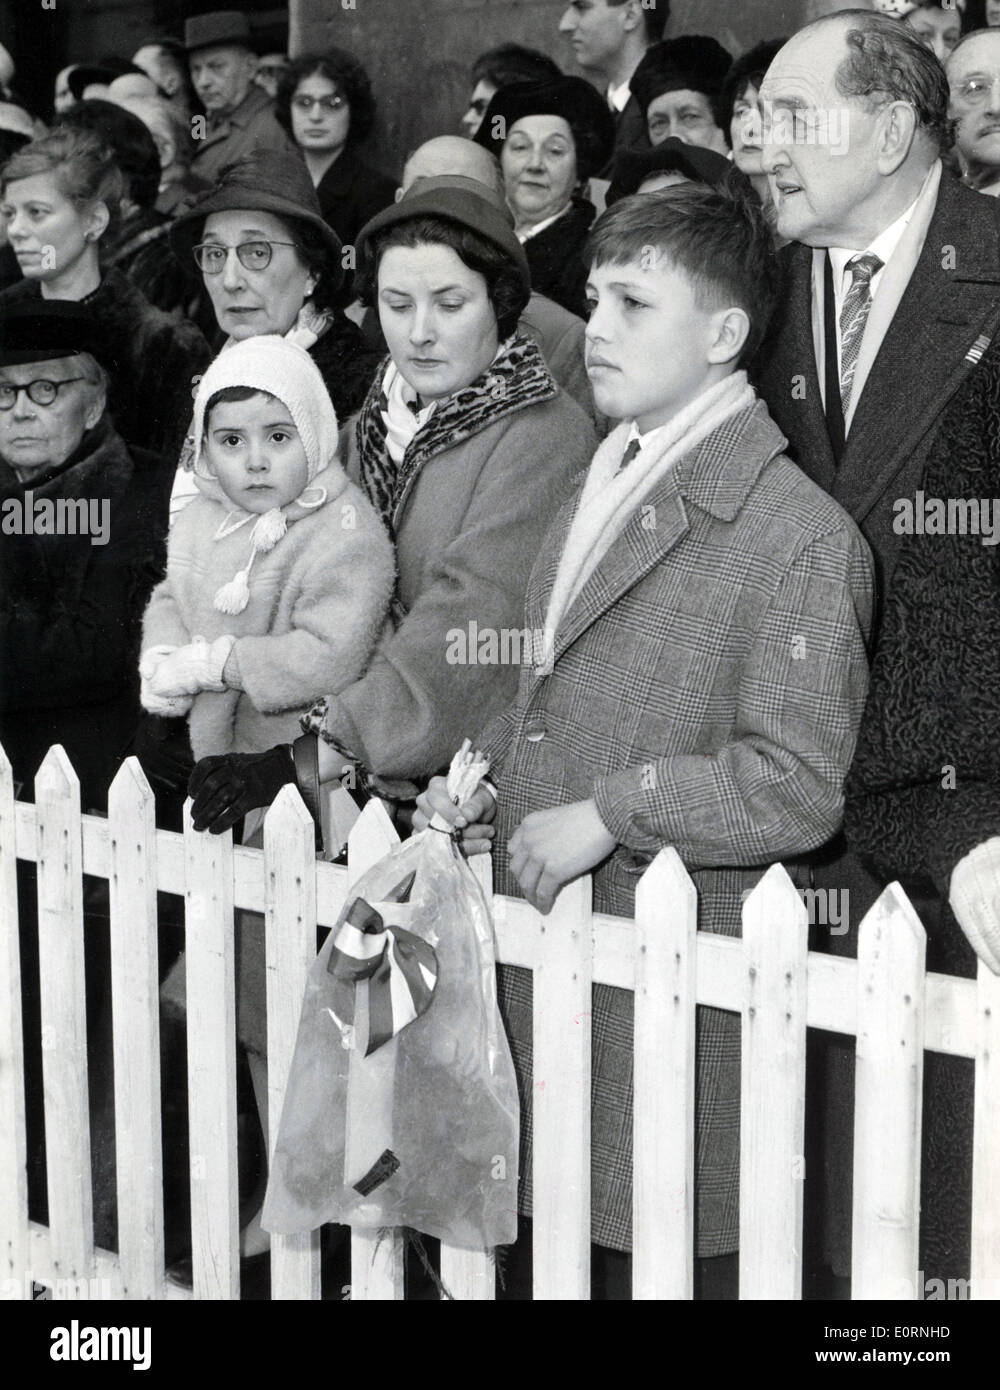 Mar. 12, 1960 - Paris, France - Ten-year-old PATRICK son of Lydia Lova, watches the ceremony where his mother is receiving a Legion of Honor for her activity during the German occupation as a member of the French Resistance. - Stock Image